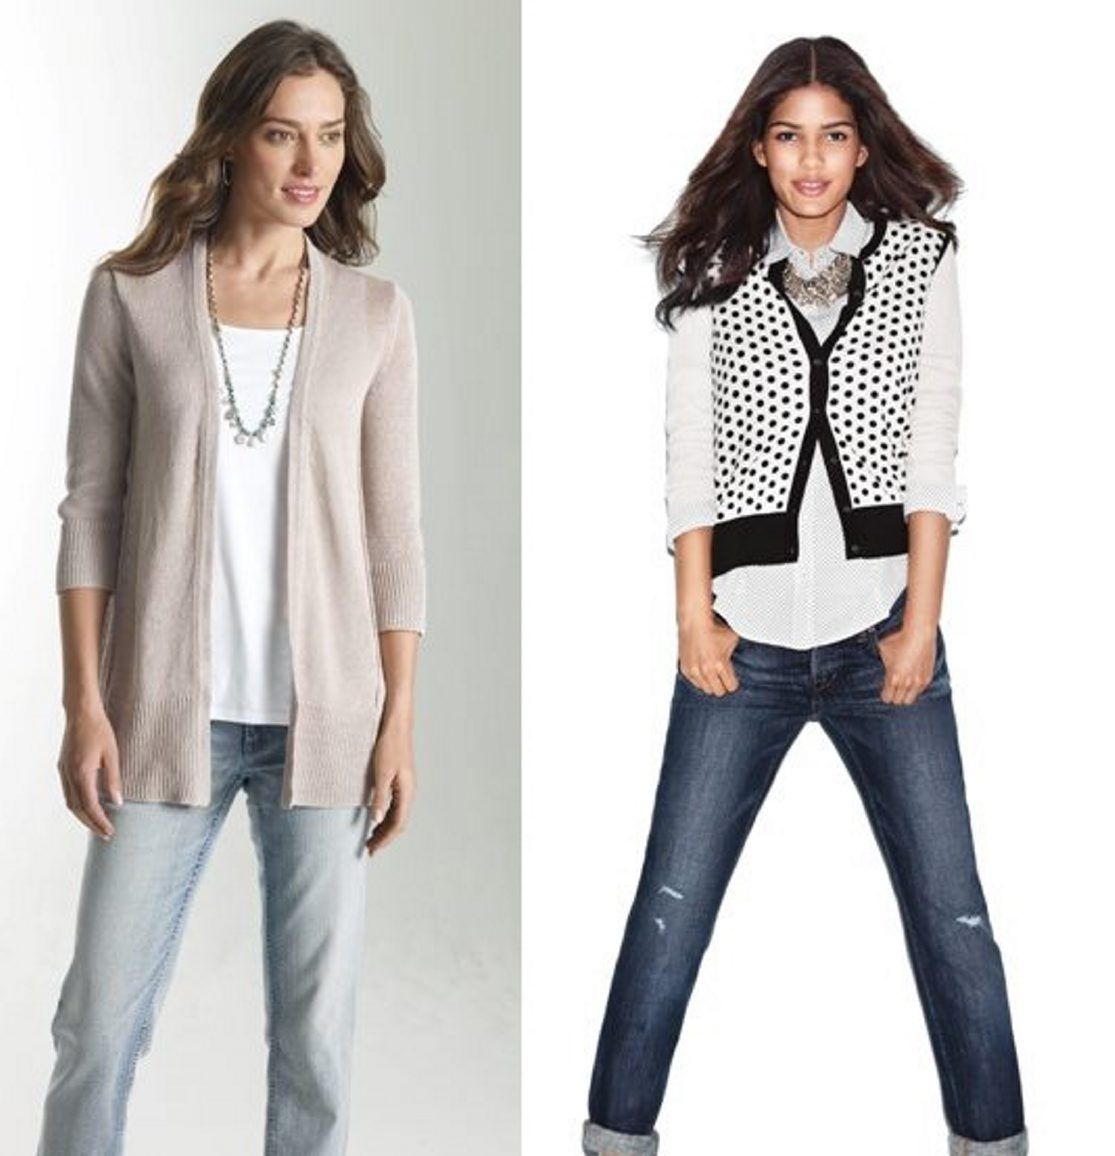 The layered look eases the transition to fall. Outfit, left, is from J. Jill; dot cardigan, right, is from LOFT.